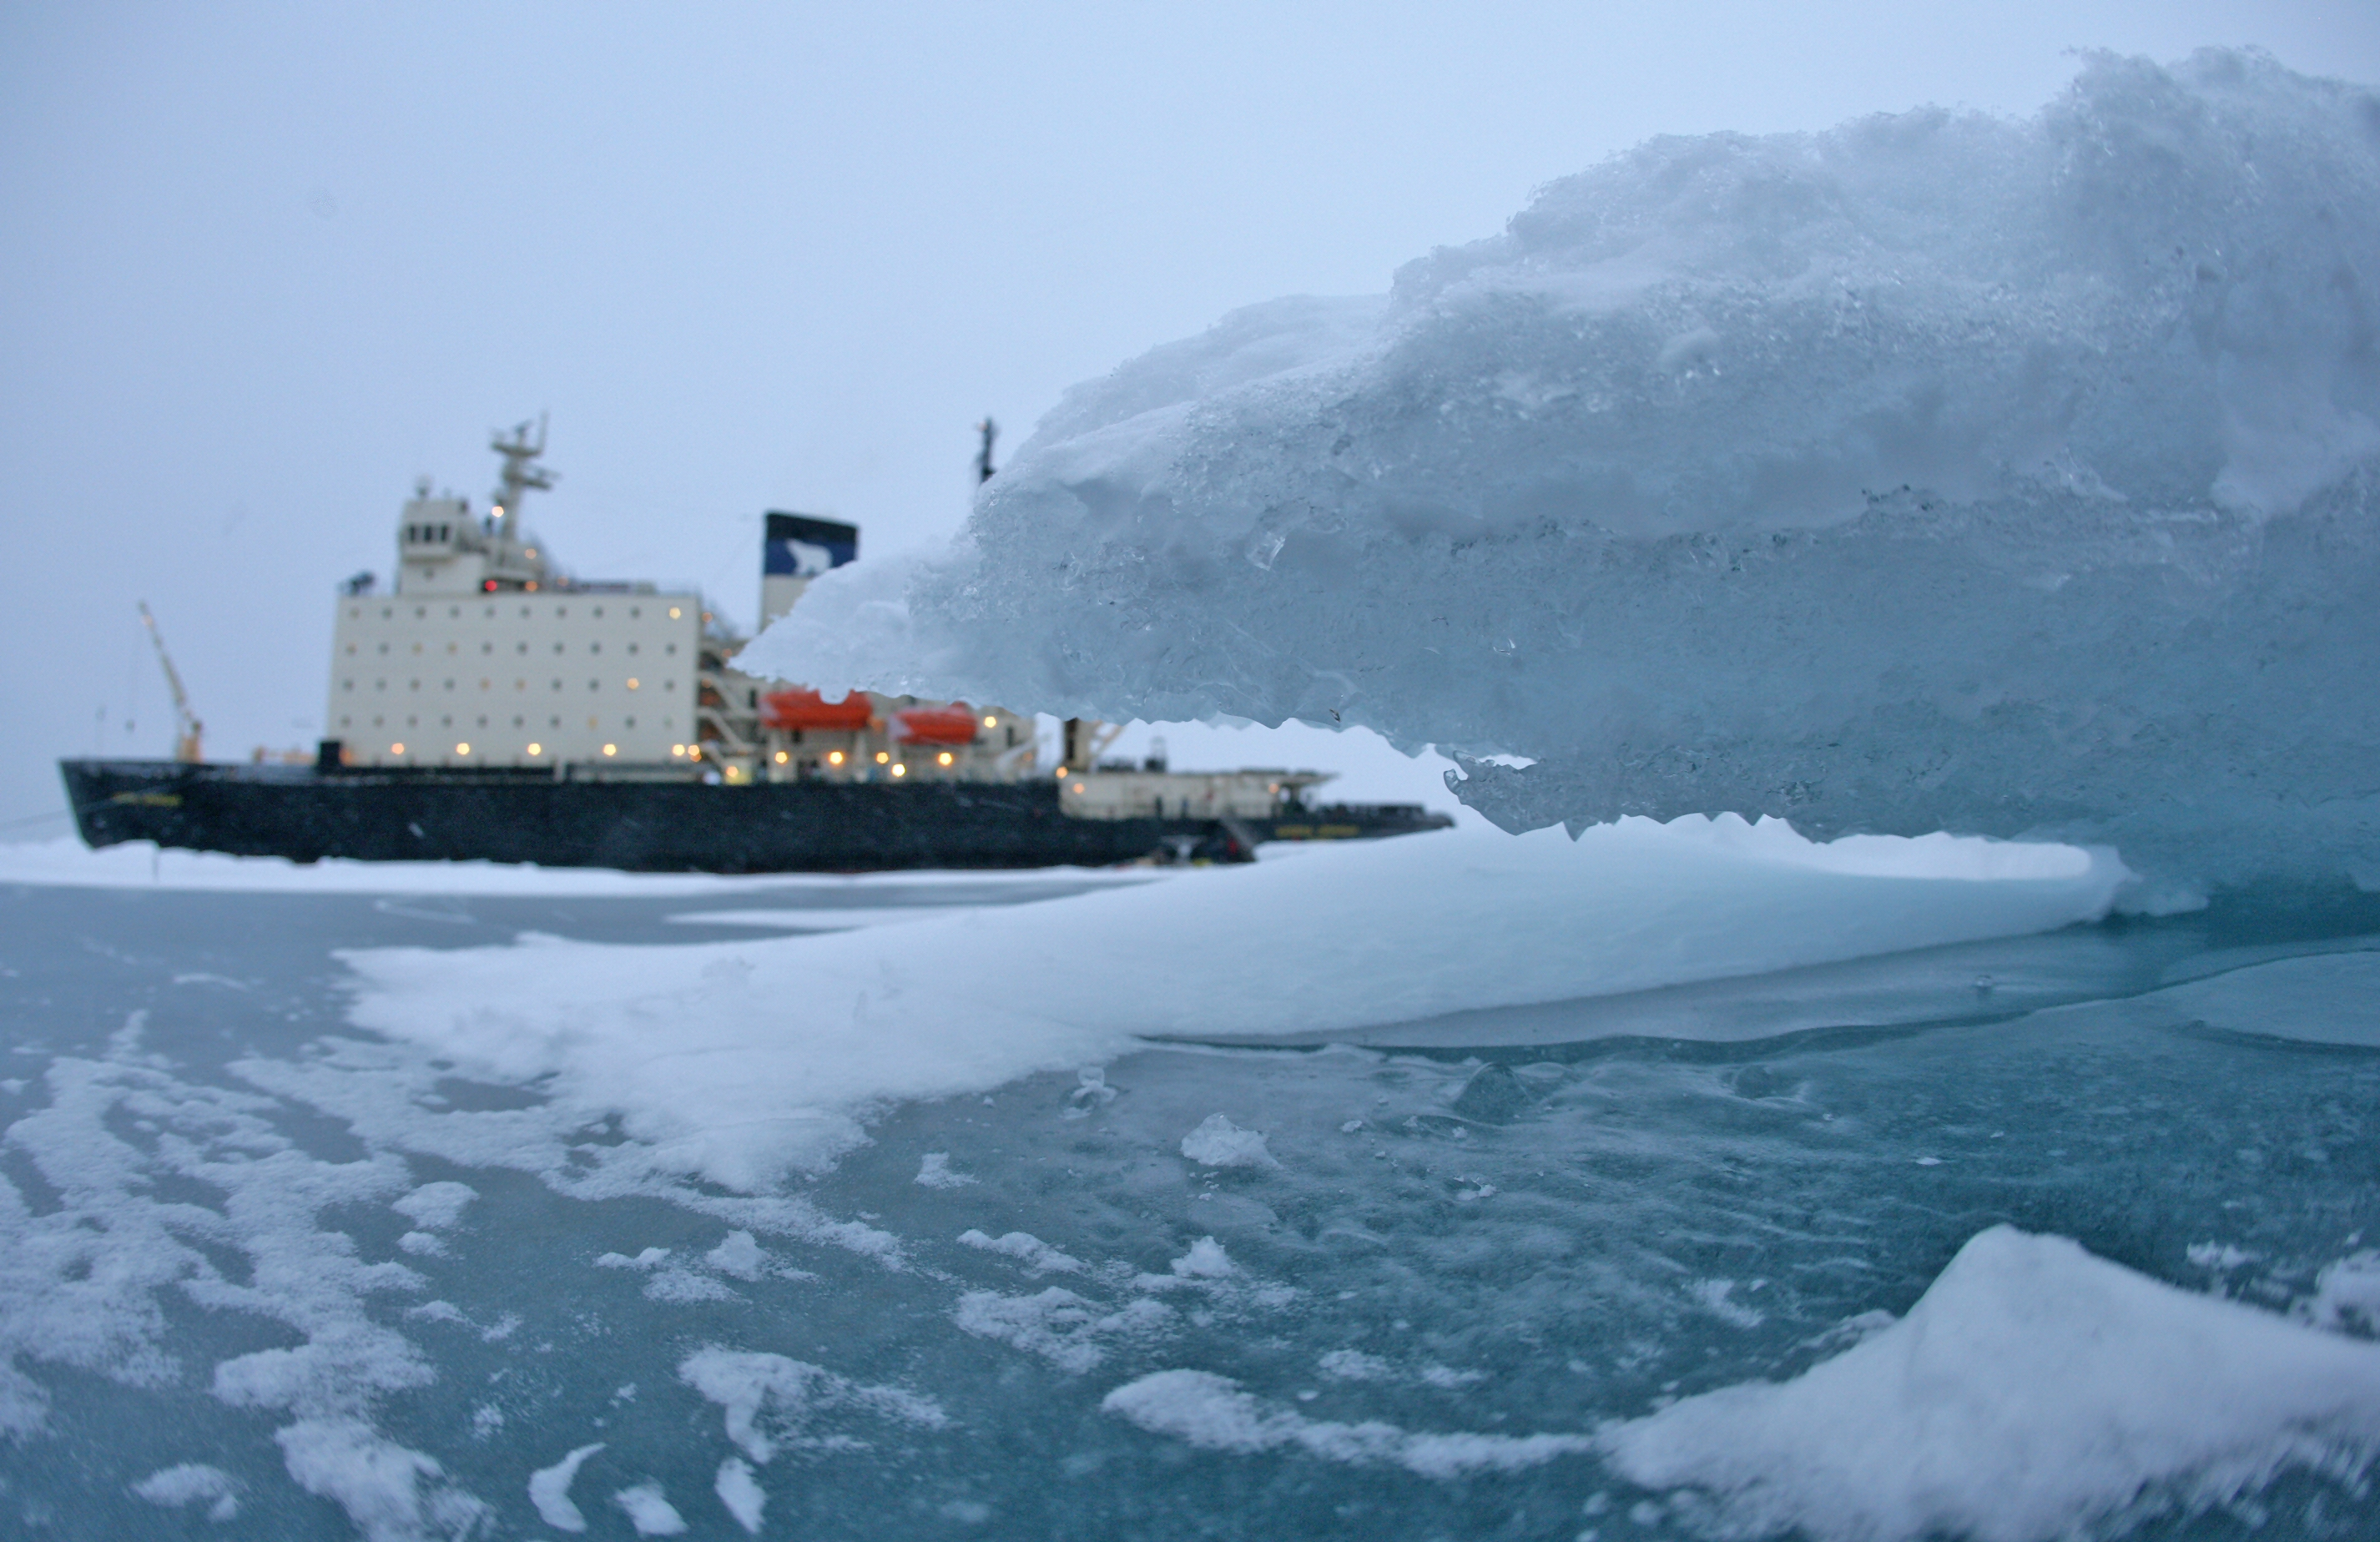 Winter navigation on Northern Sea Route remains challenging